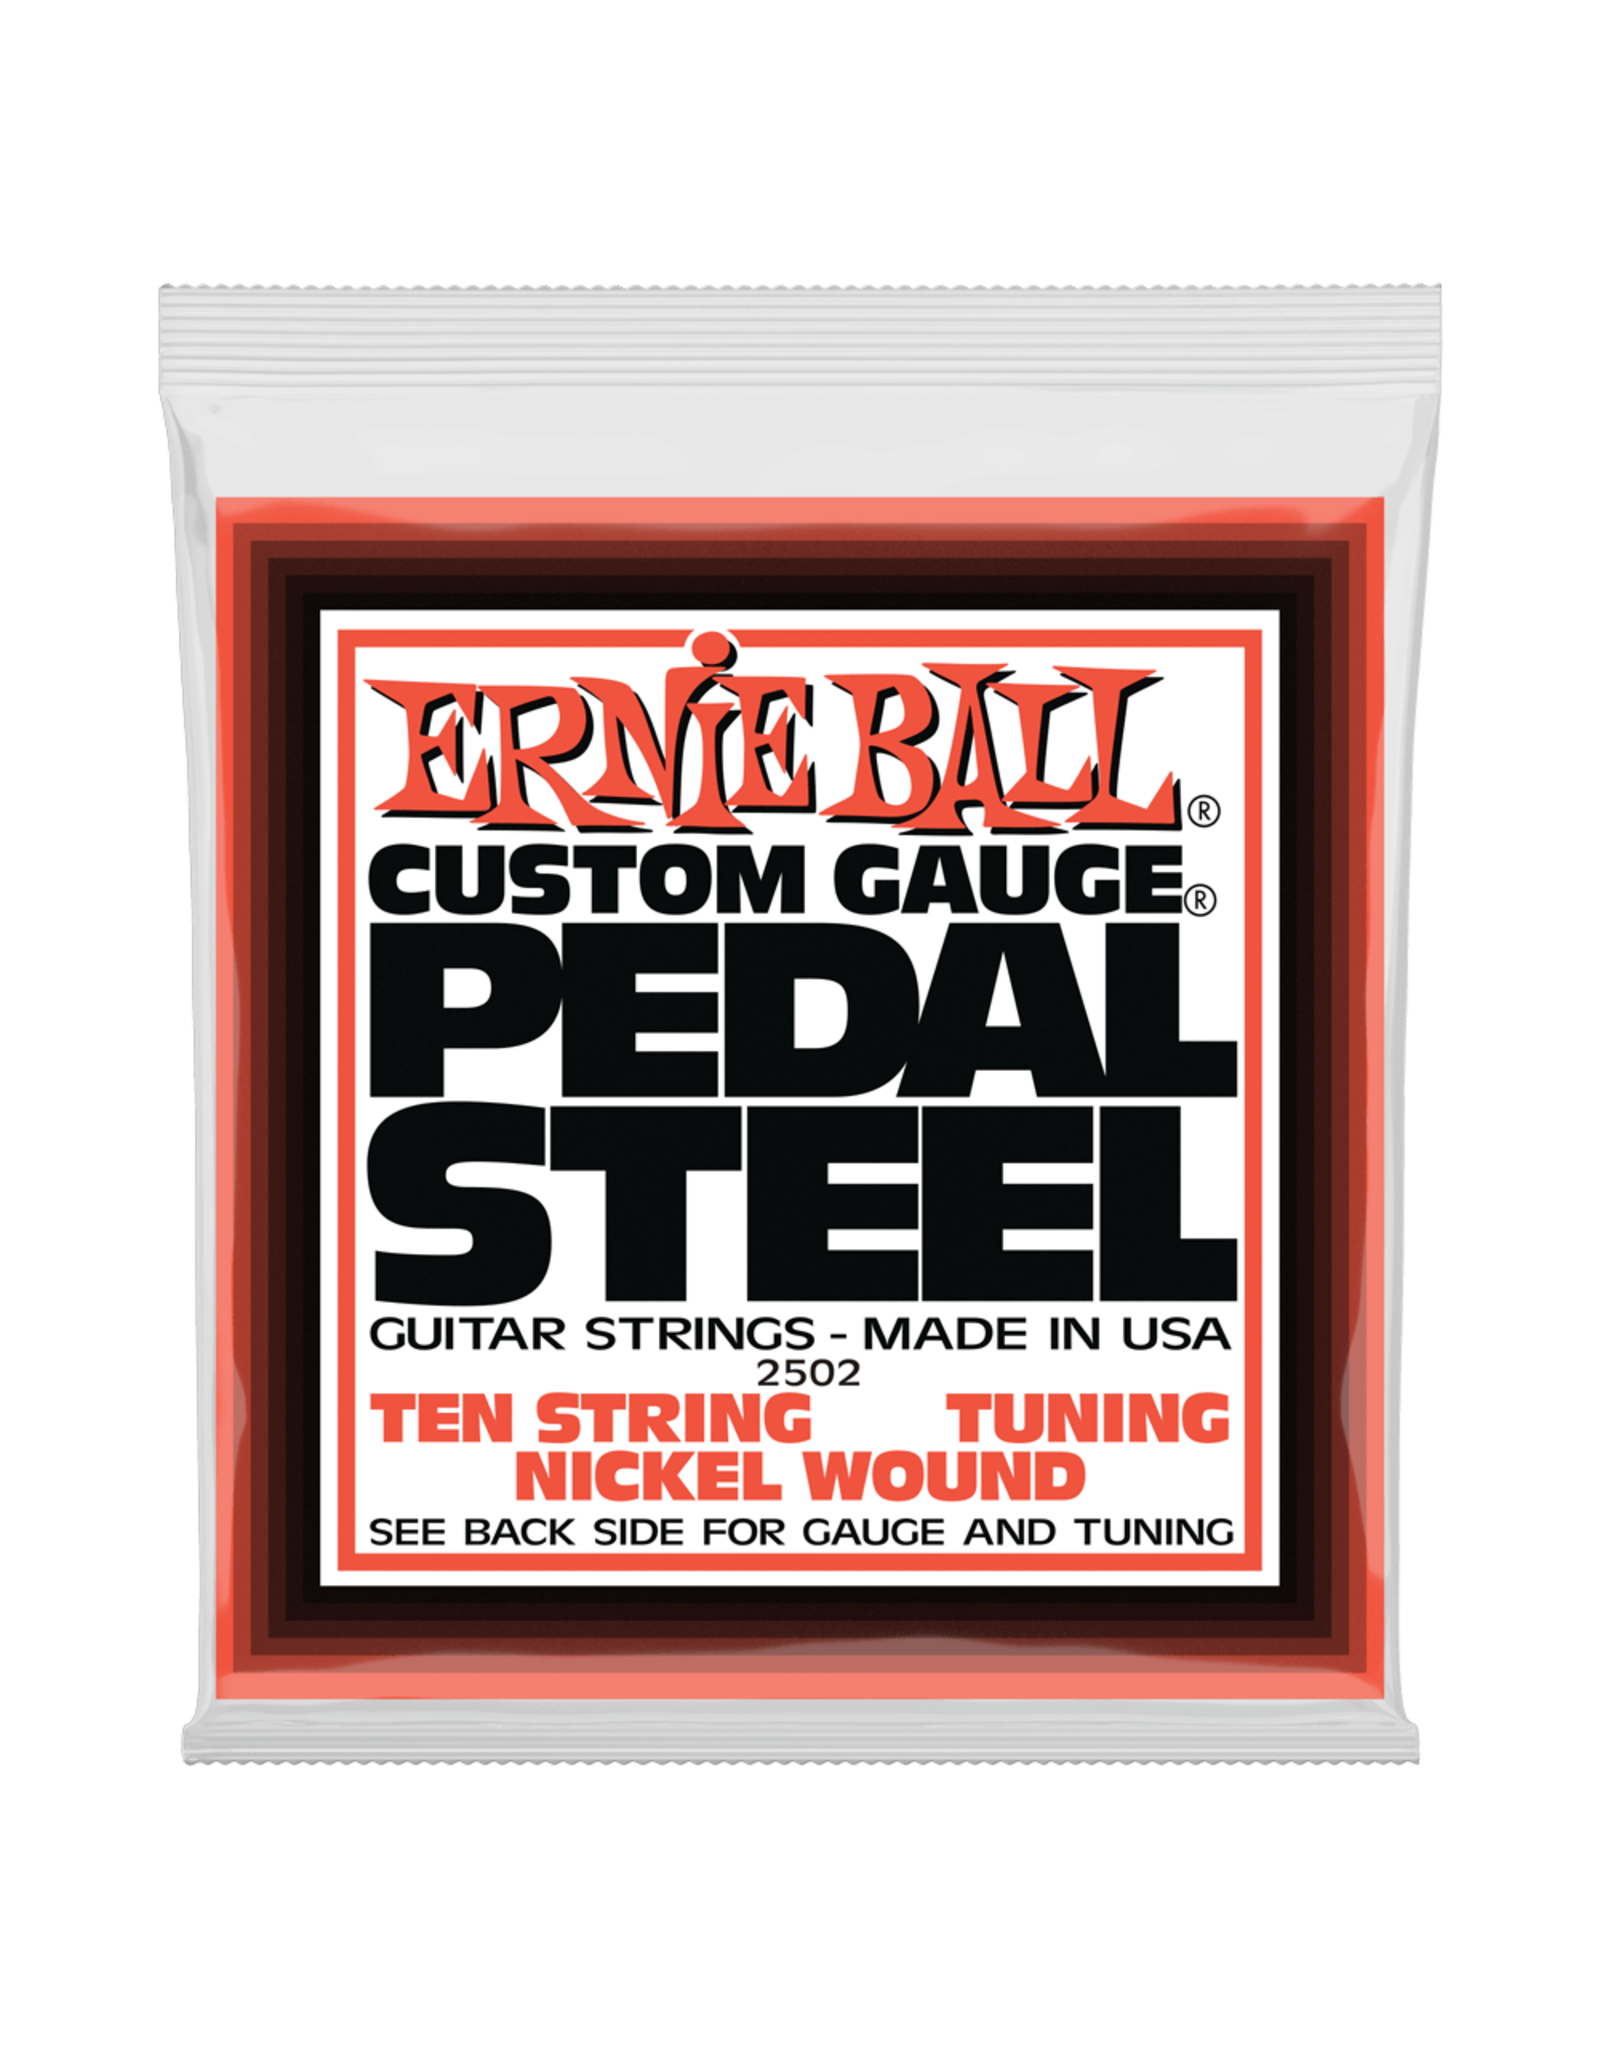 Ernie Ball Ernie Ball 2502 Pedal Steel 10-String E9 Tuning Nickel Wound Electric Guitar Strings - 13-38 Gauge